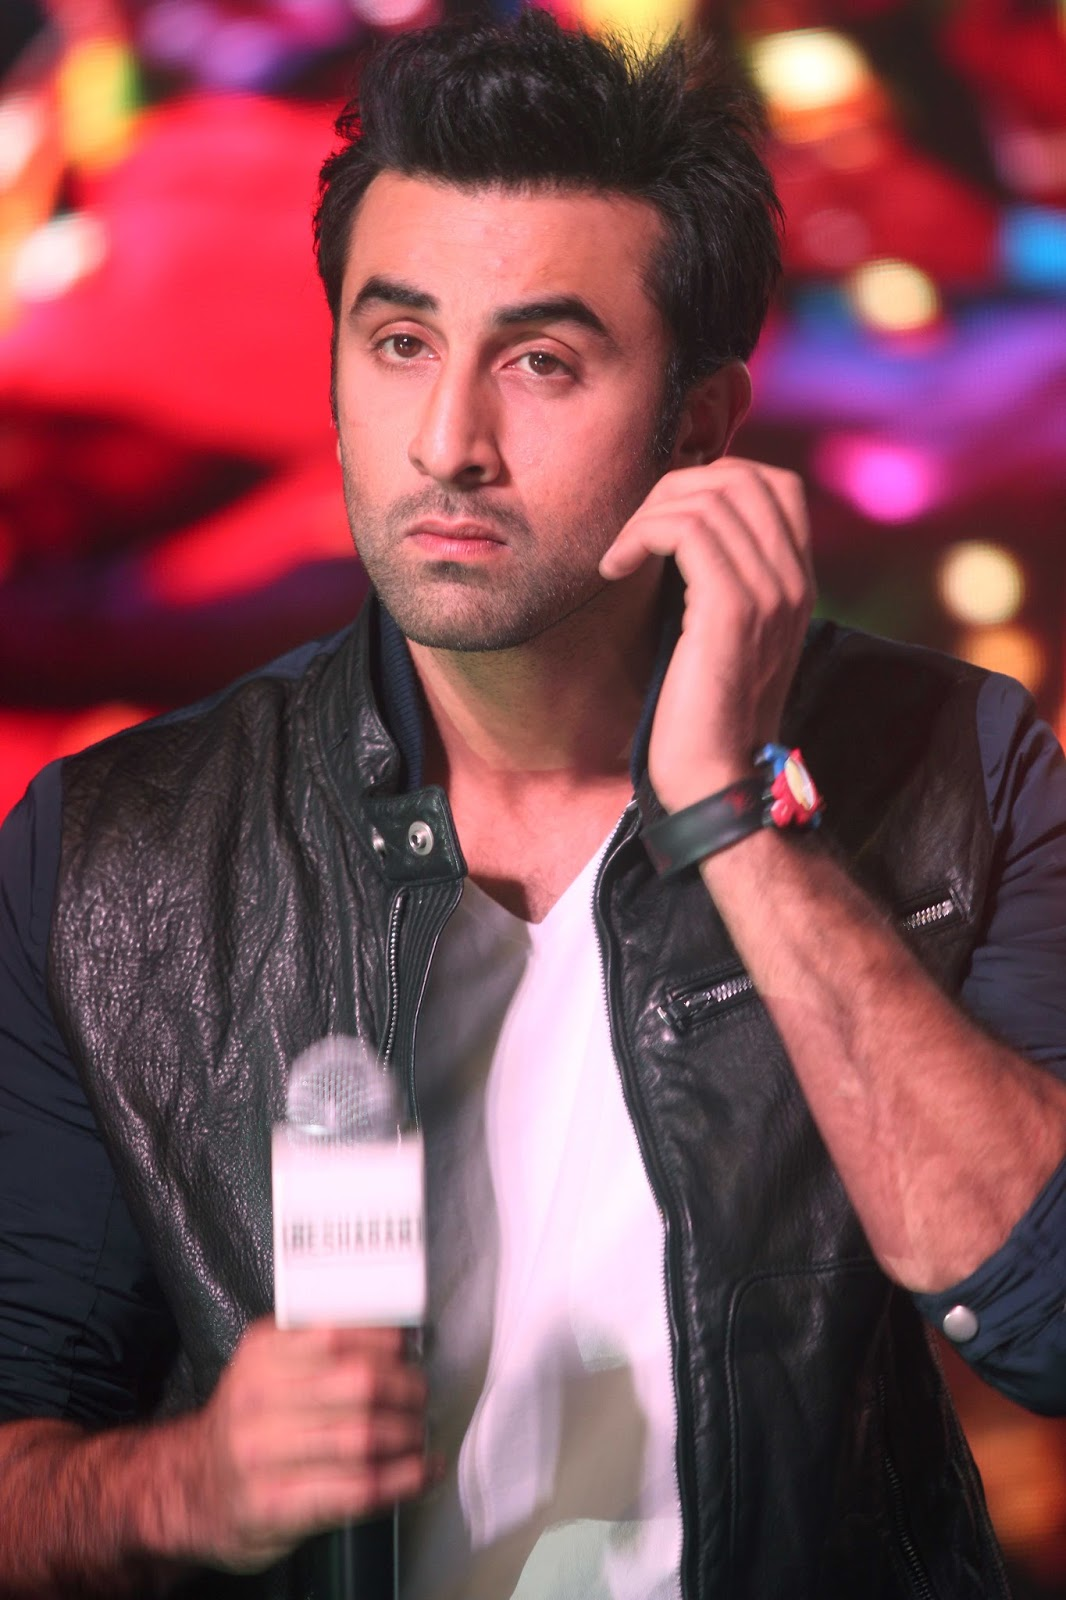 http://1.bp.blogspot.com/--hxPI0nZ4dI/UinBwYzuuSI/AAAAAAABiSc/u7iVWfwcStk/s1600/Ranbir+Kapoor+at+the+launch+of+song+%2527Aare+Aare%2527+from+movie+%2527Besharam%2527+%25288%2529.JPG